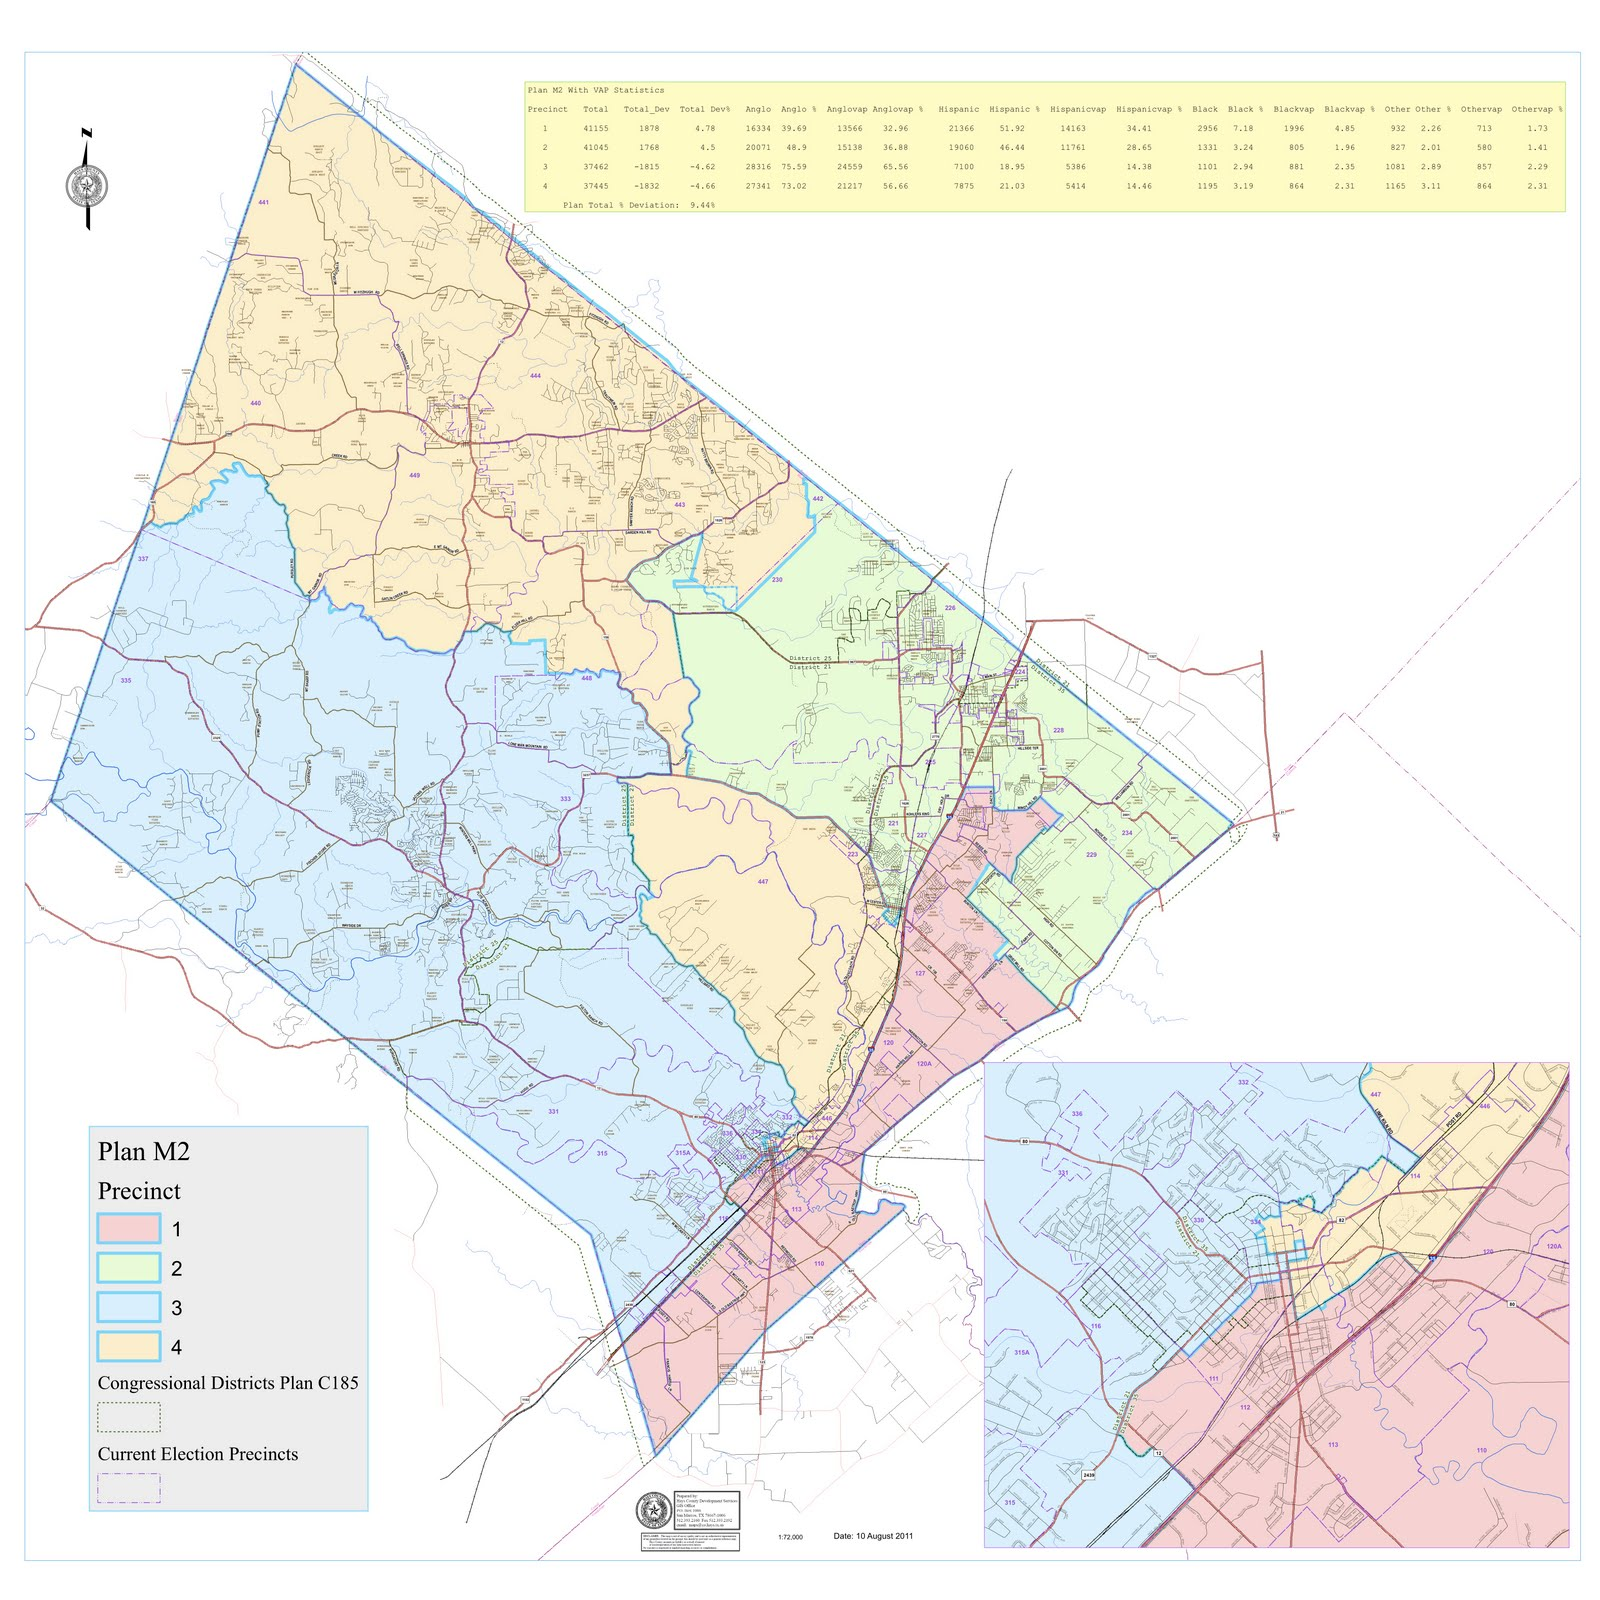 The Hays County RoundUp: New County Redistricting Map, M2